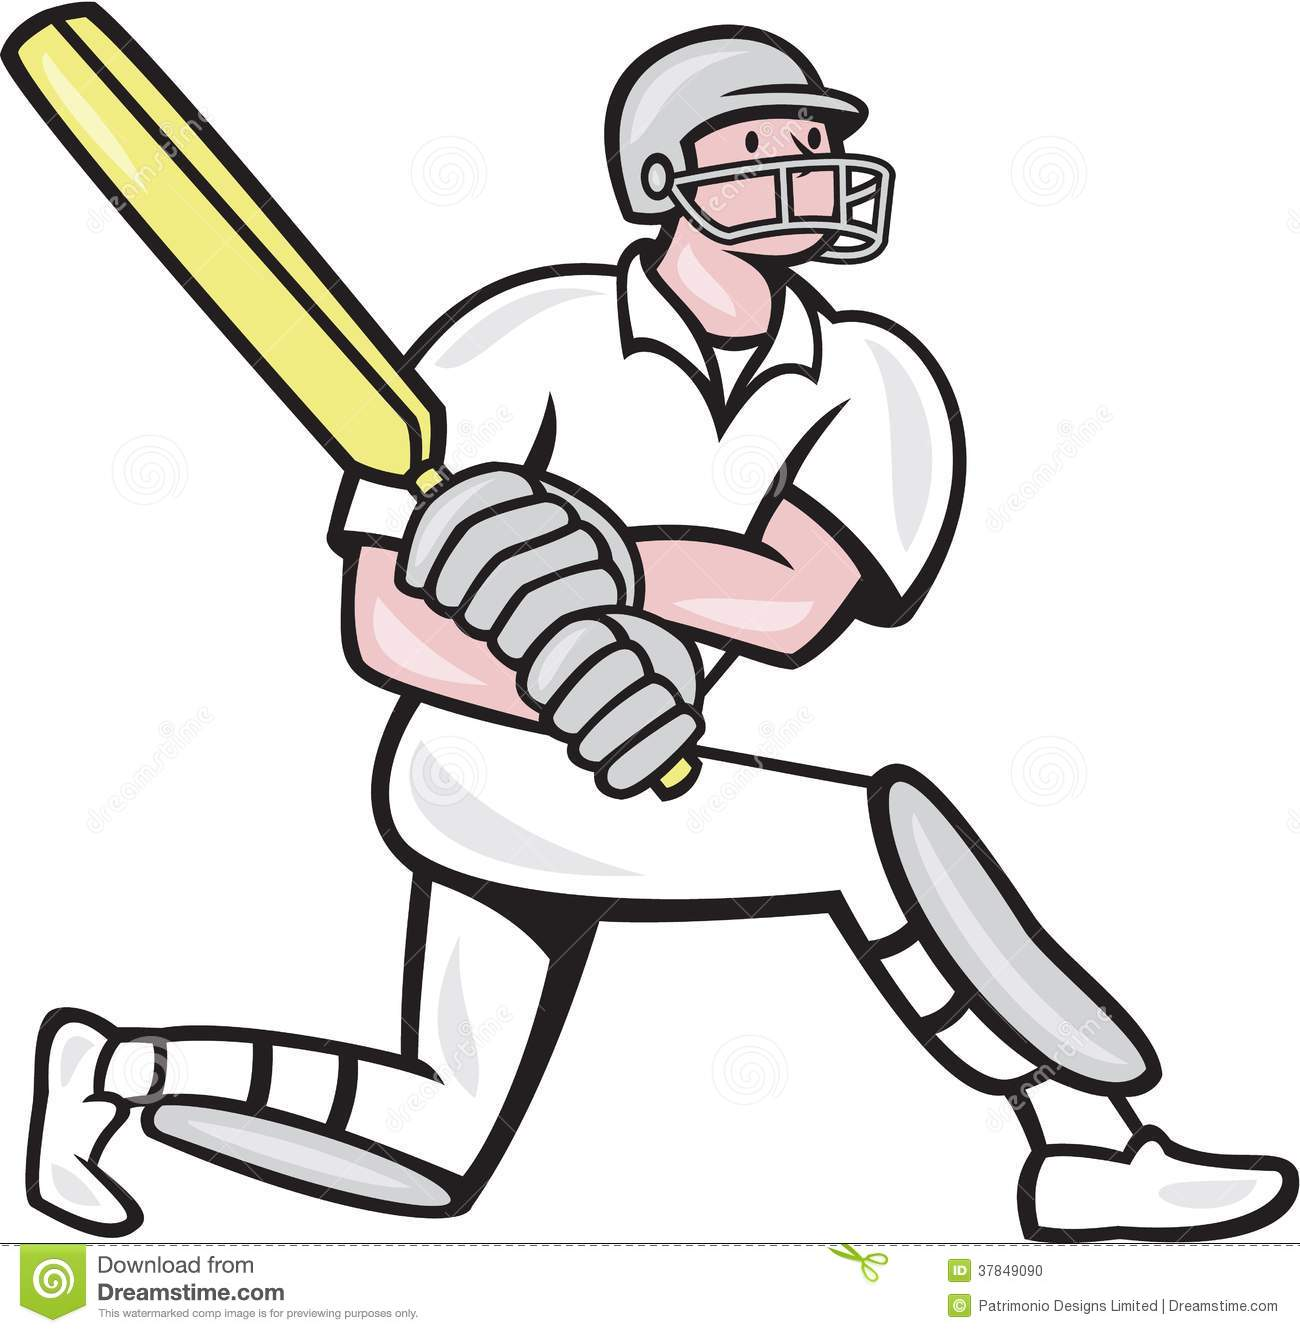 Illustration of a cricket player batsman with bat batting kneel done ...